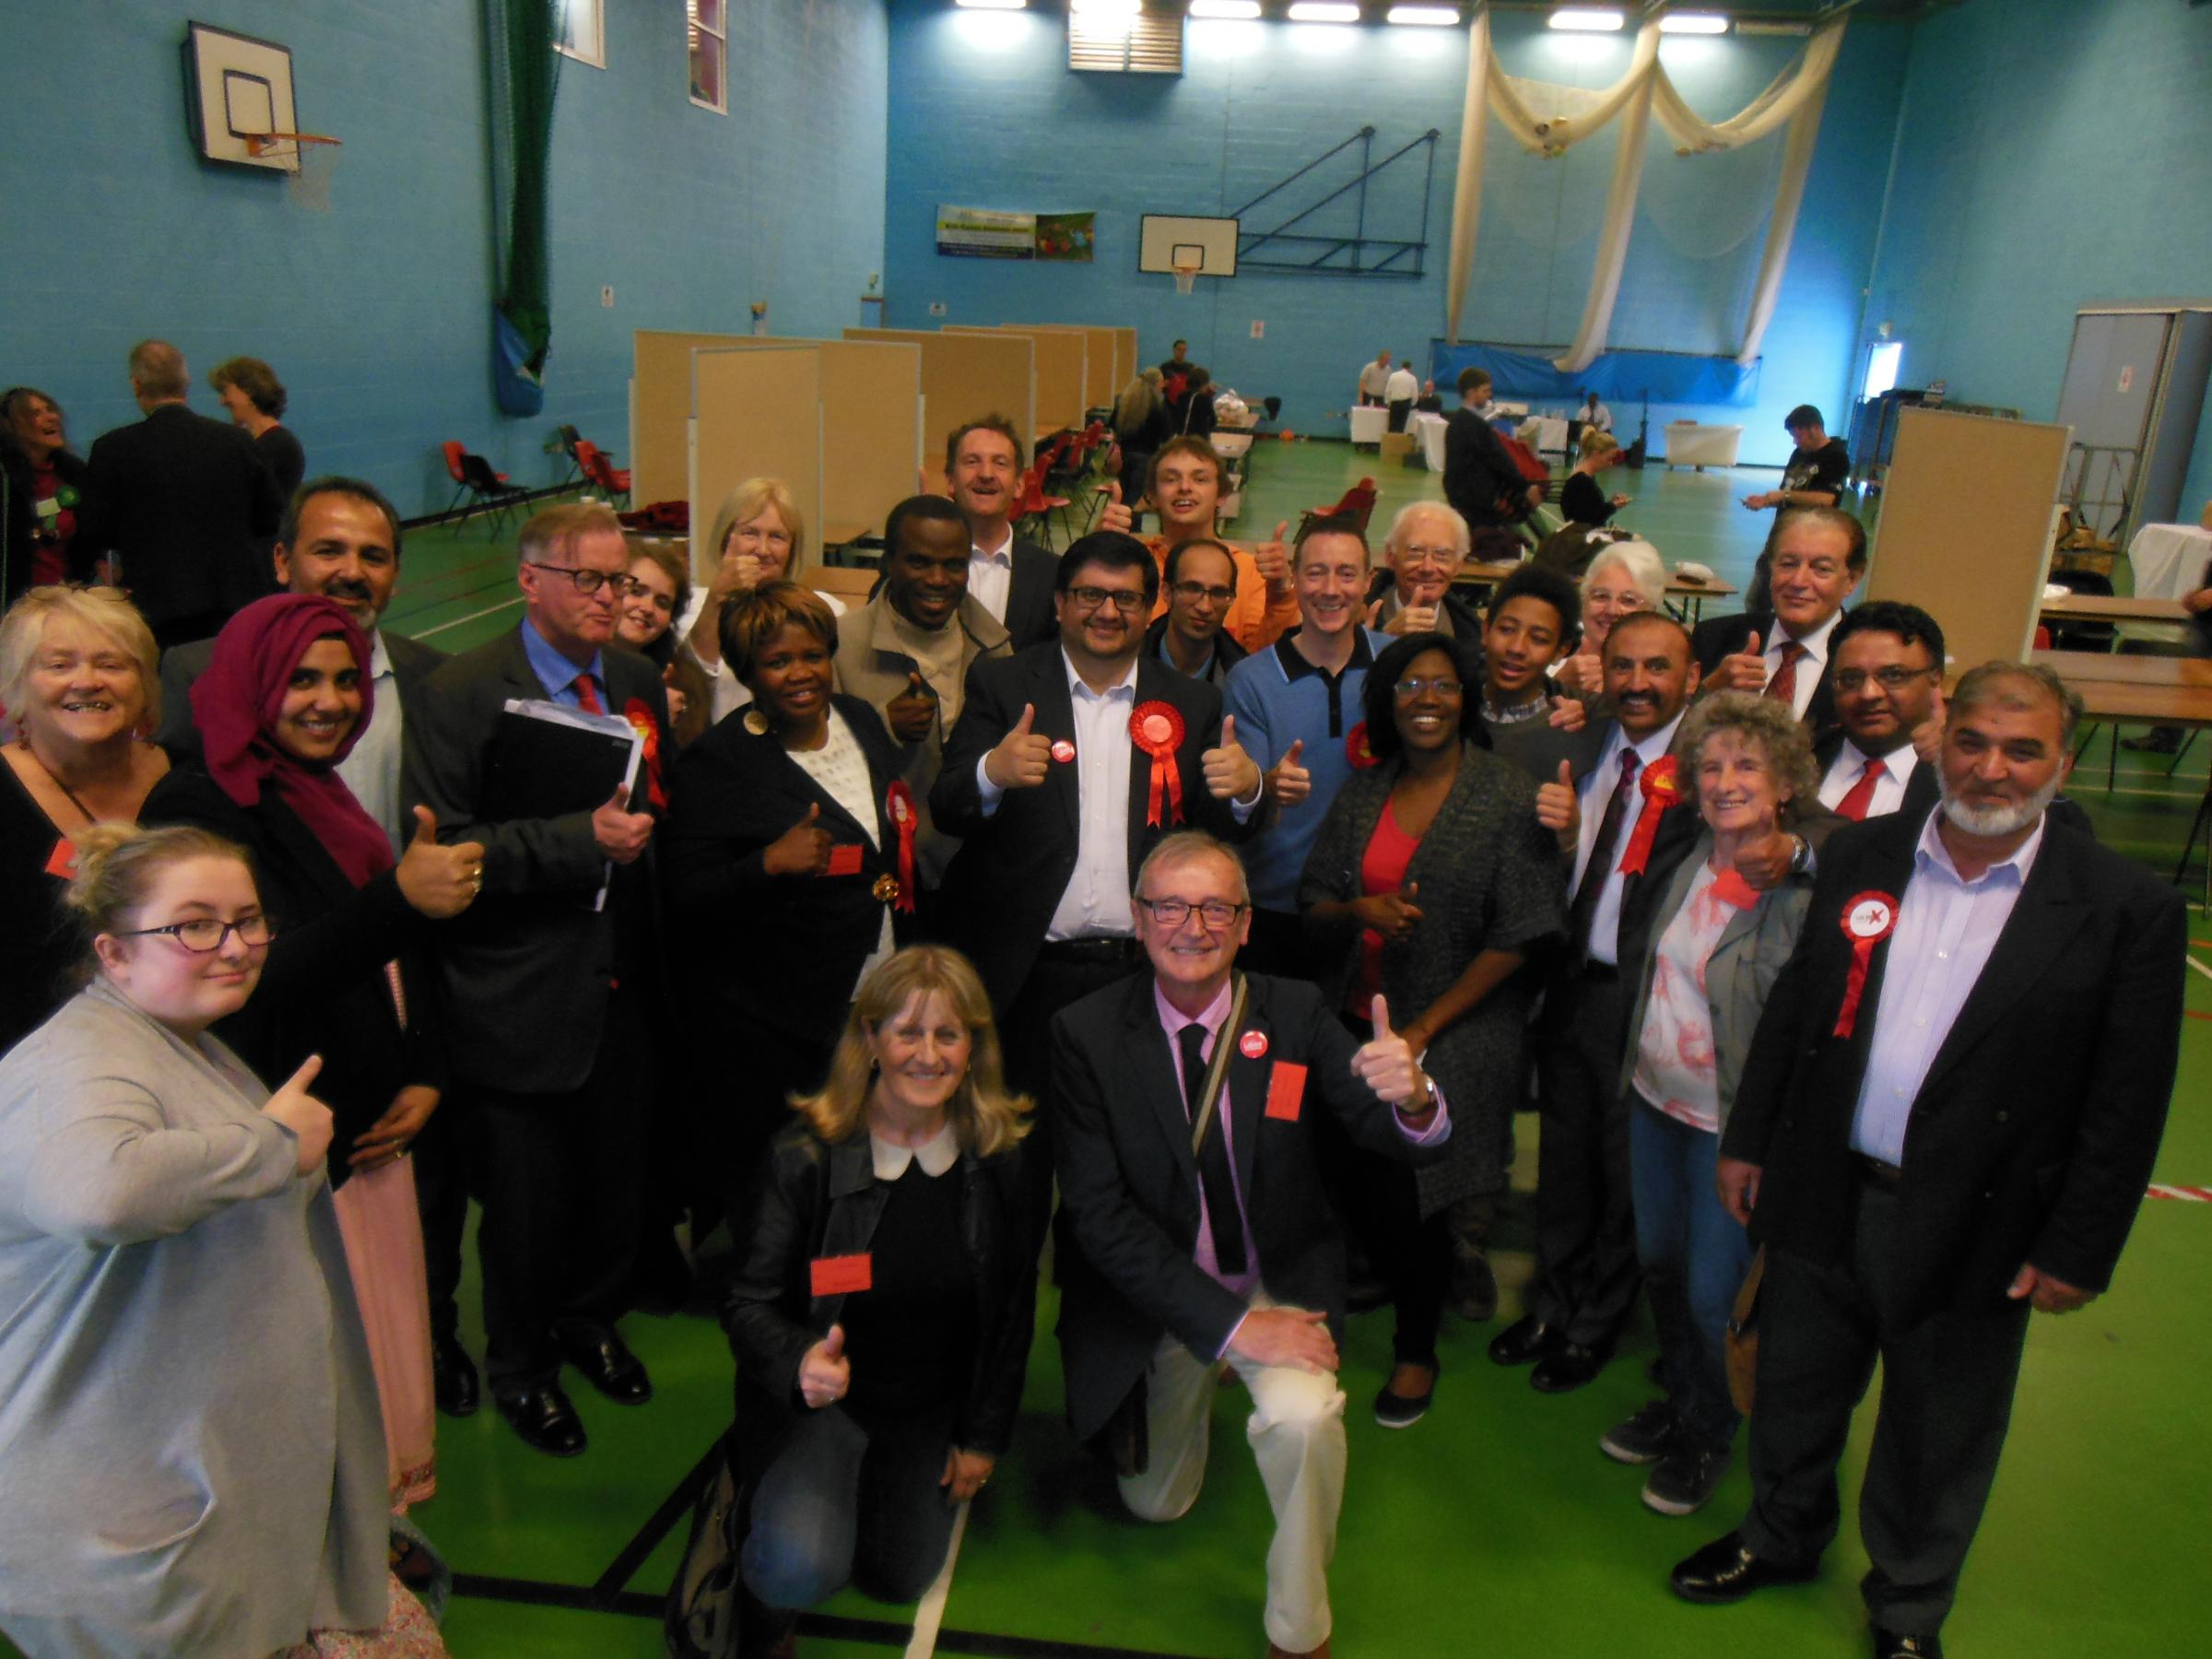 Watford Labour celebrate two gains in today's Borough Council election